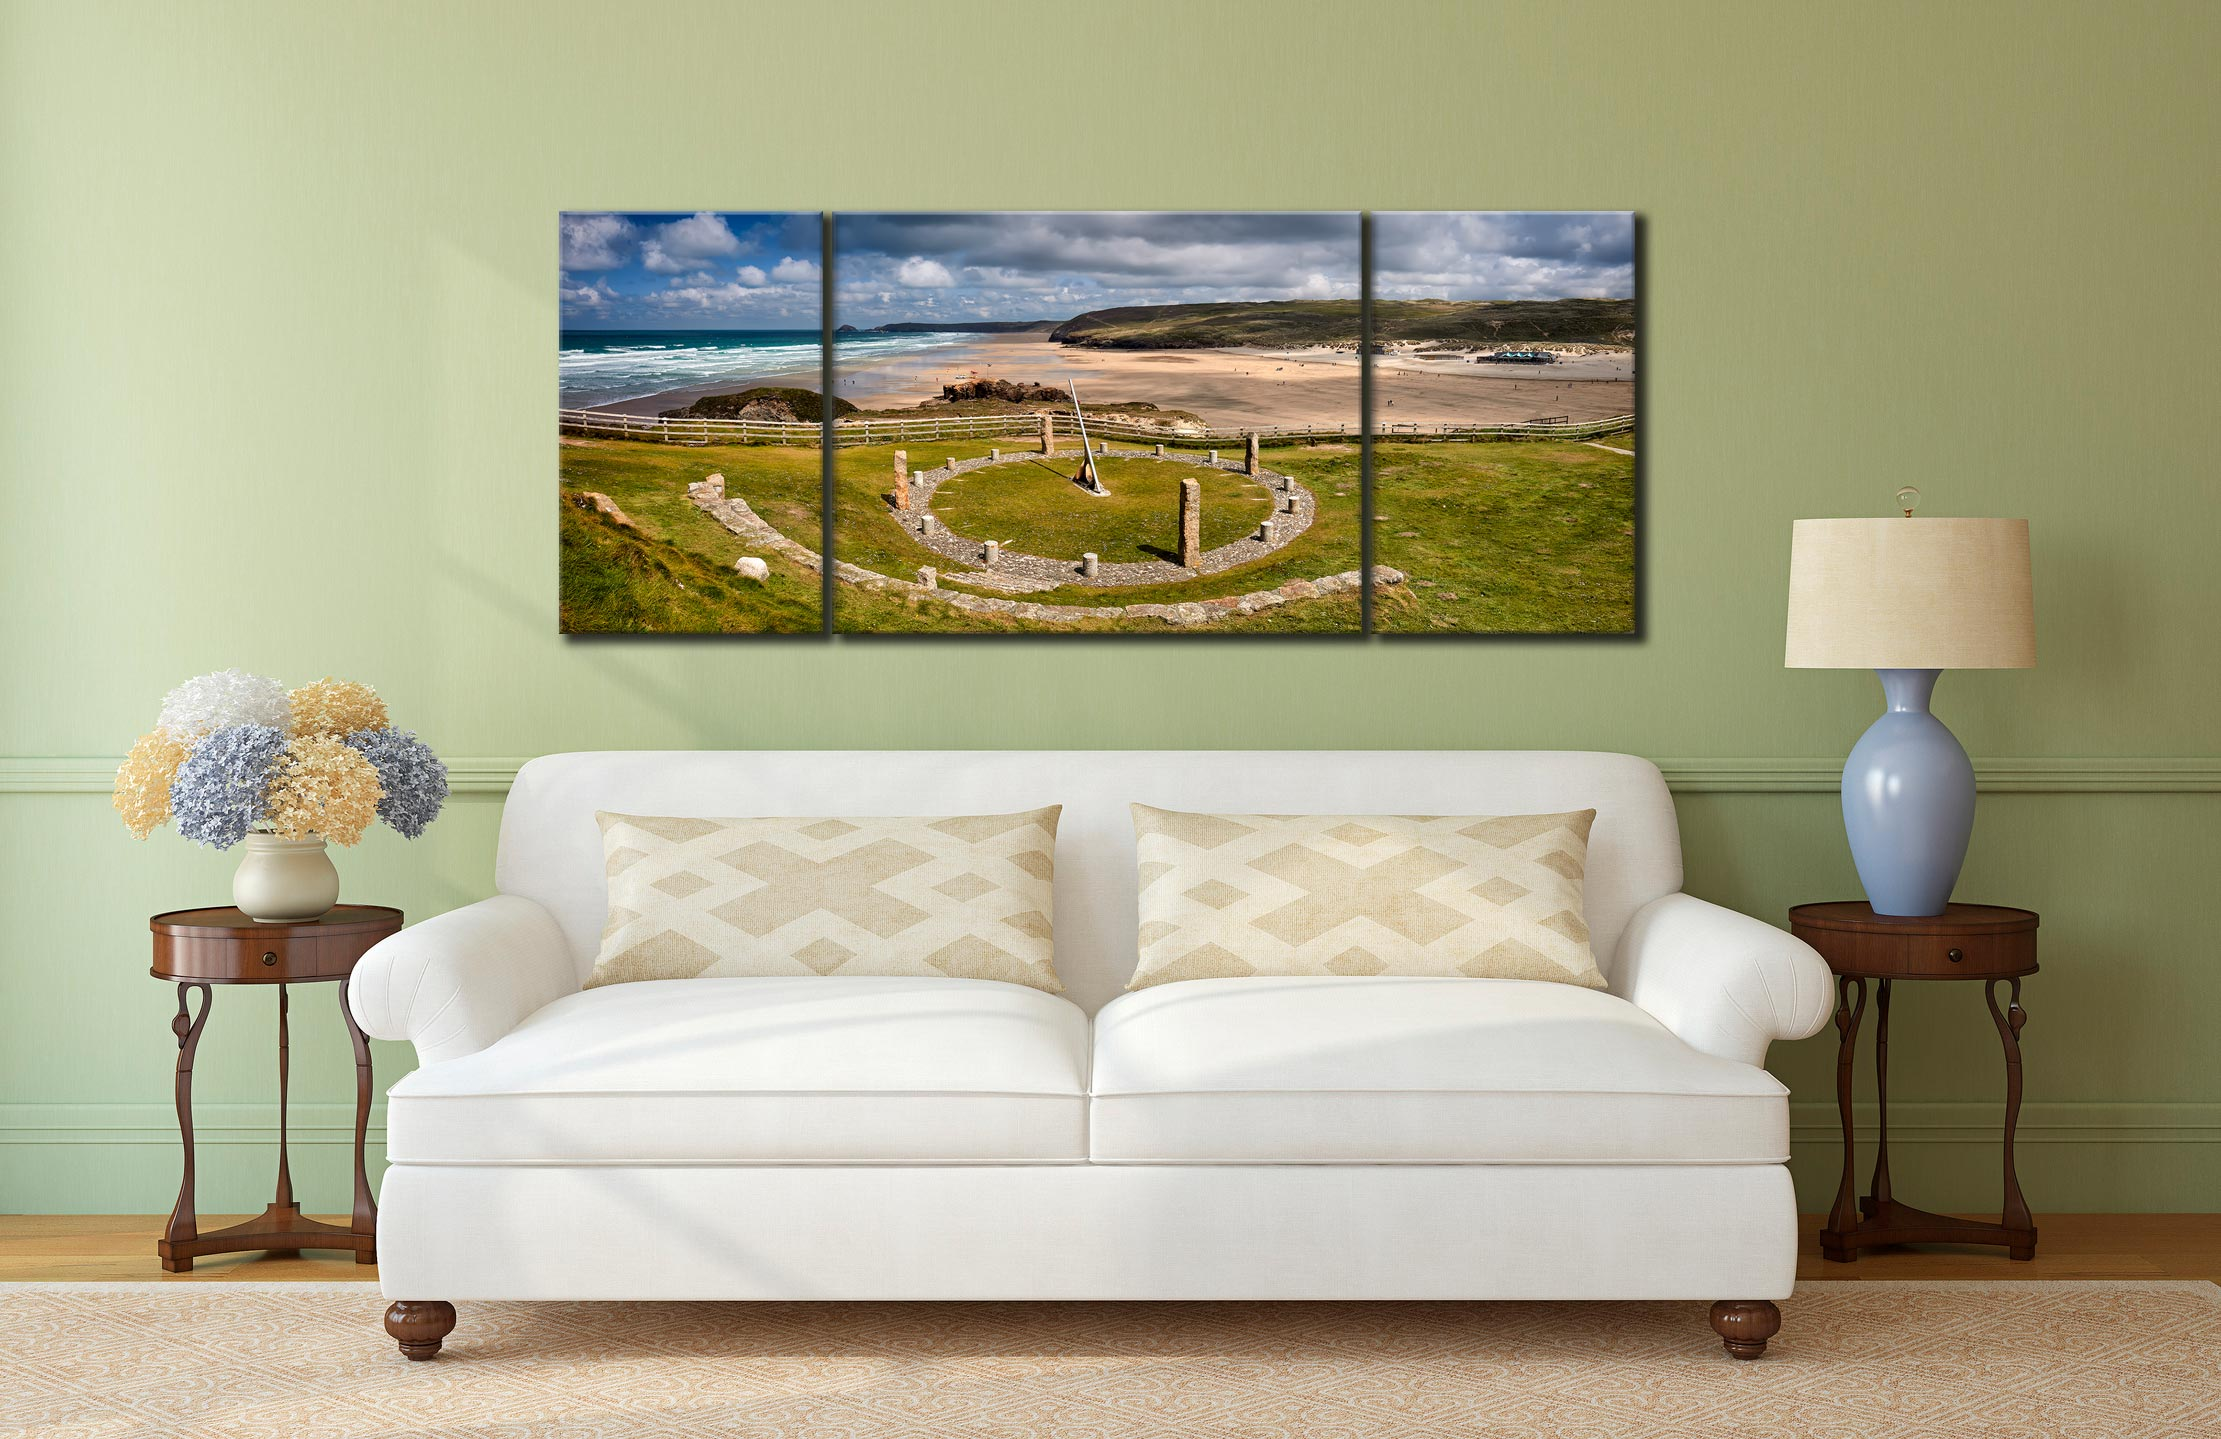 Perranporth Sundial and Beach - 3 Panel Wide Mid Canvas on Wall